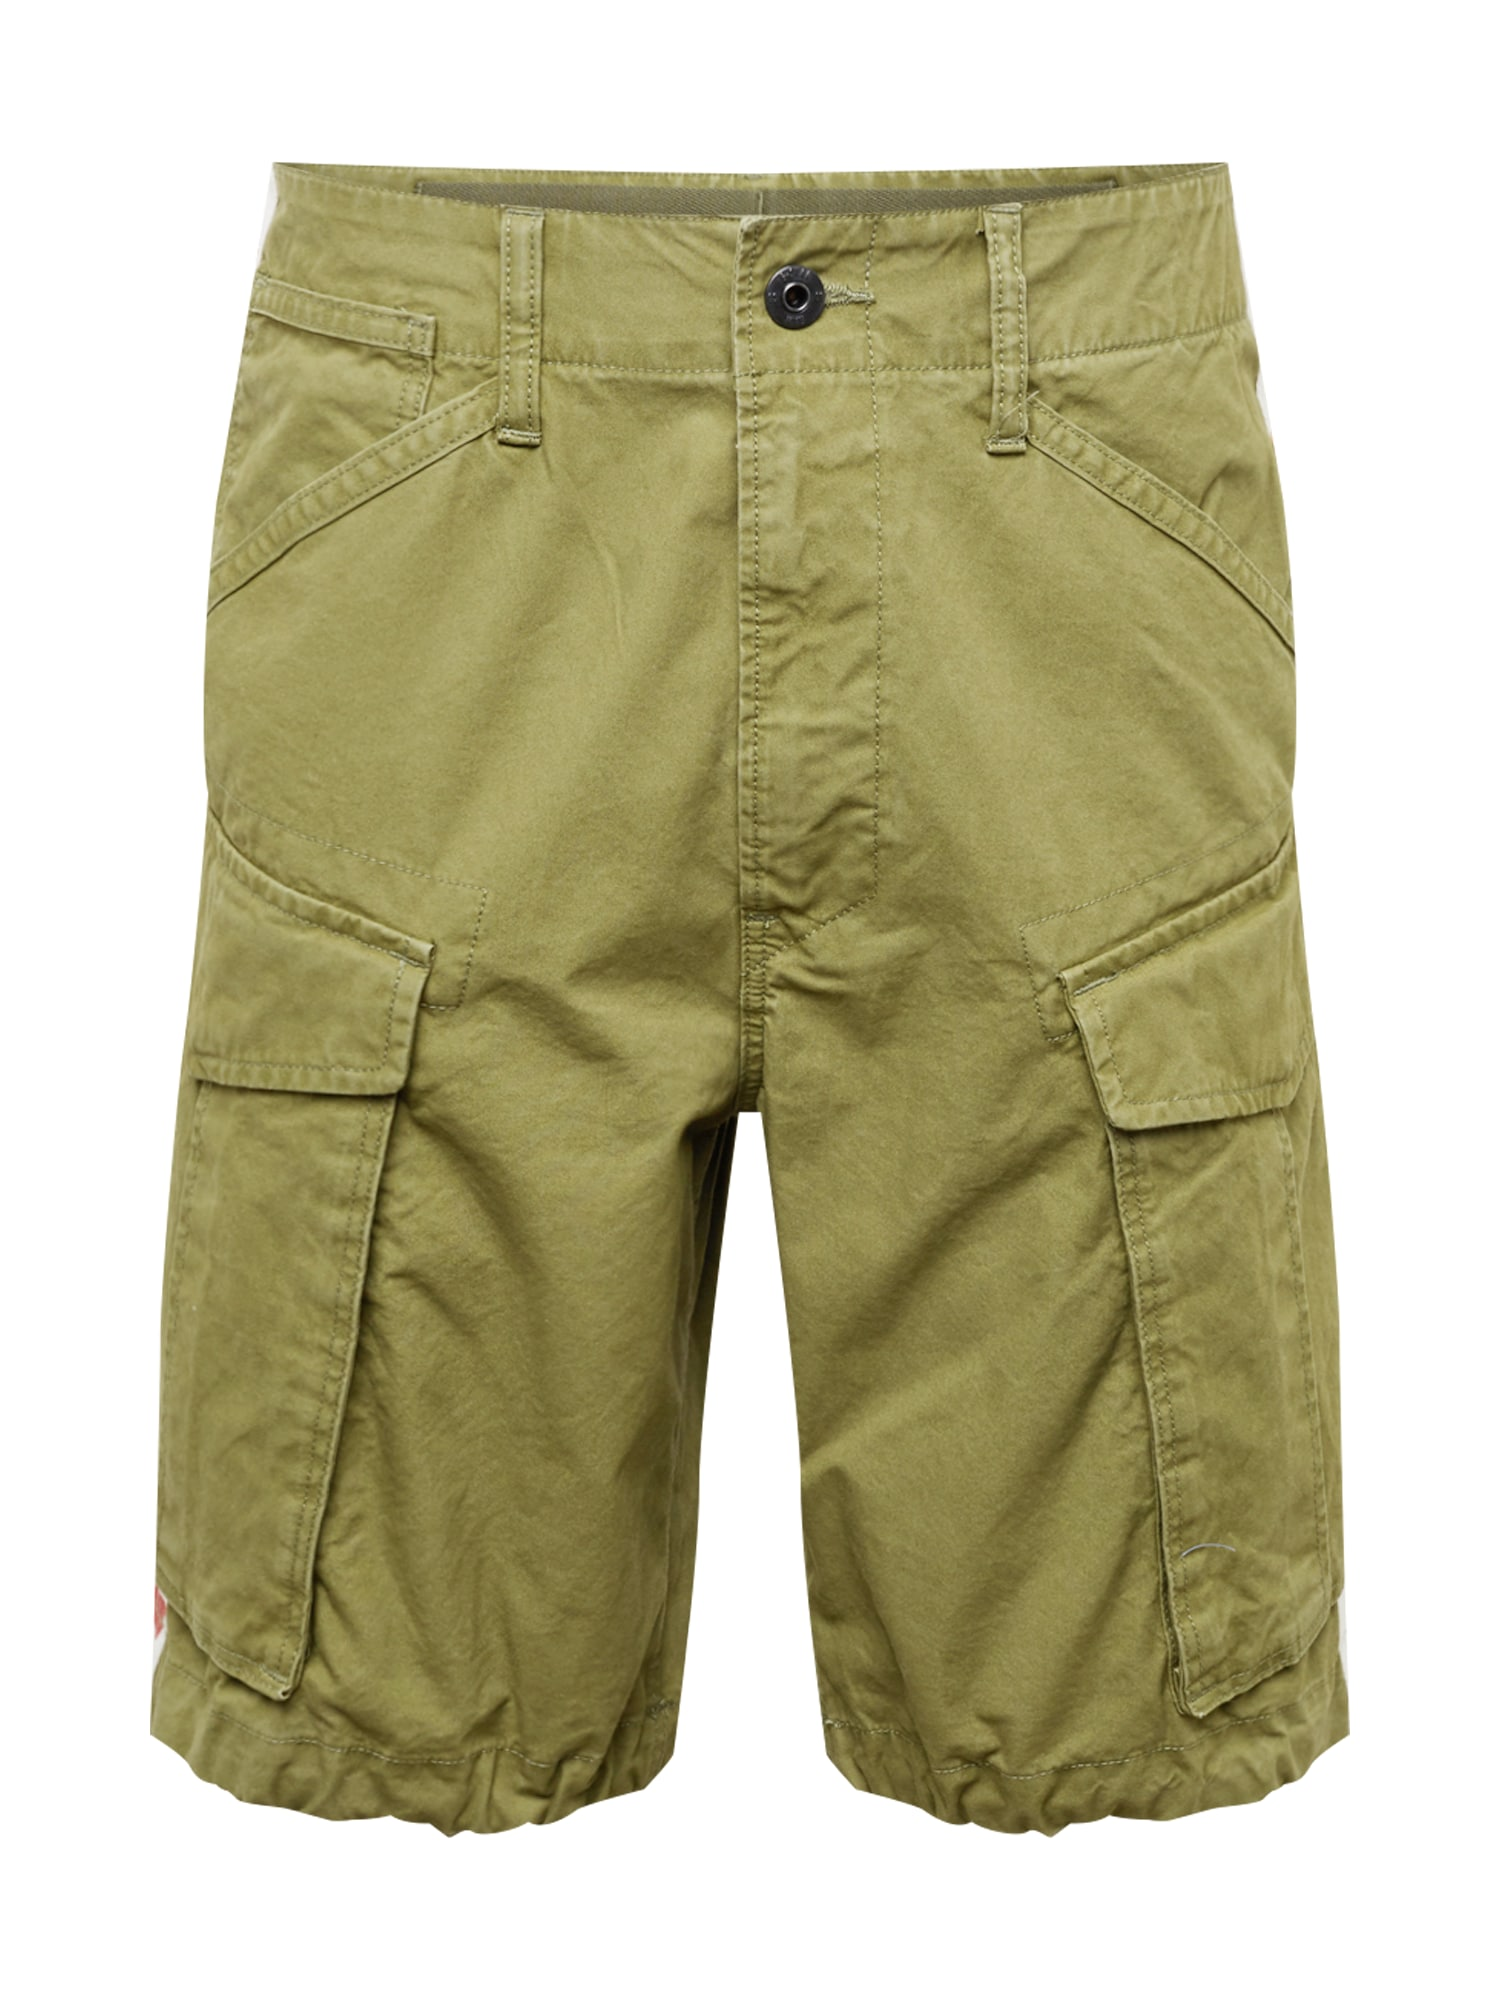 Kapsáče Rovic khaki G-STAR RAW